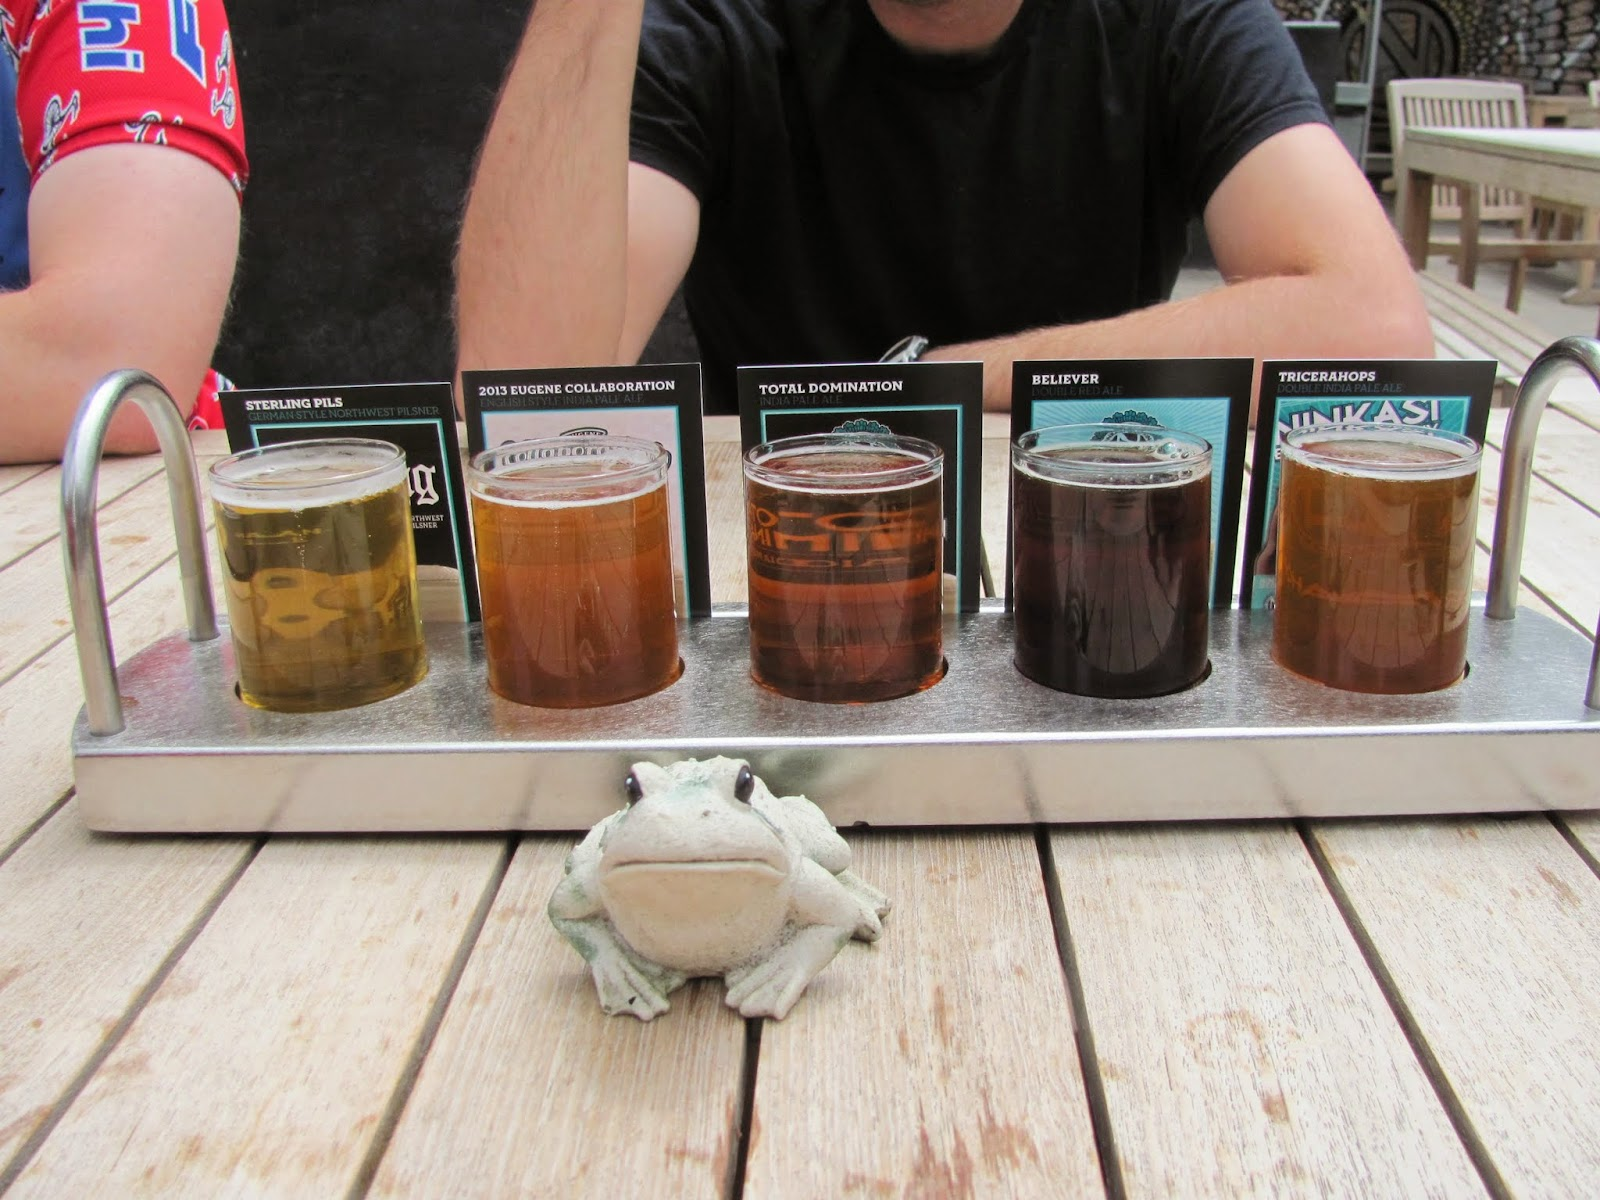 Frog poses with the flight of beverages at Ninkasi Brewing in Eugene, Oregon